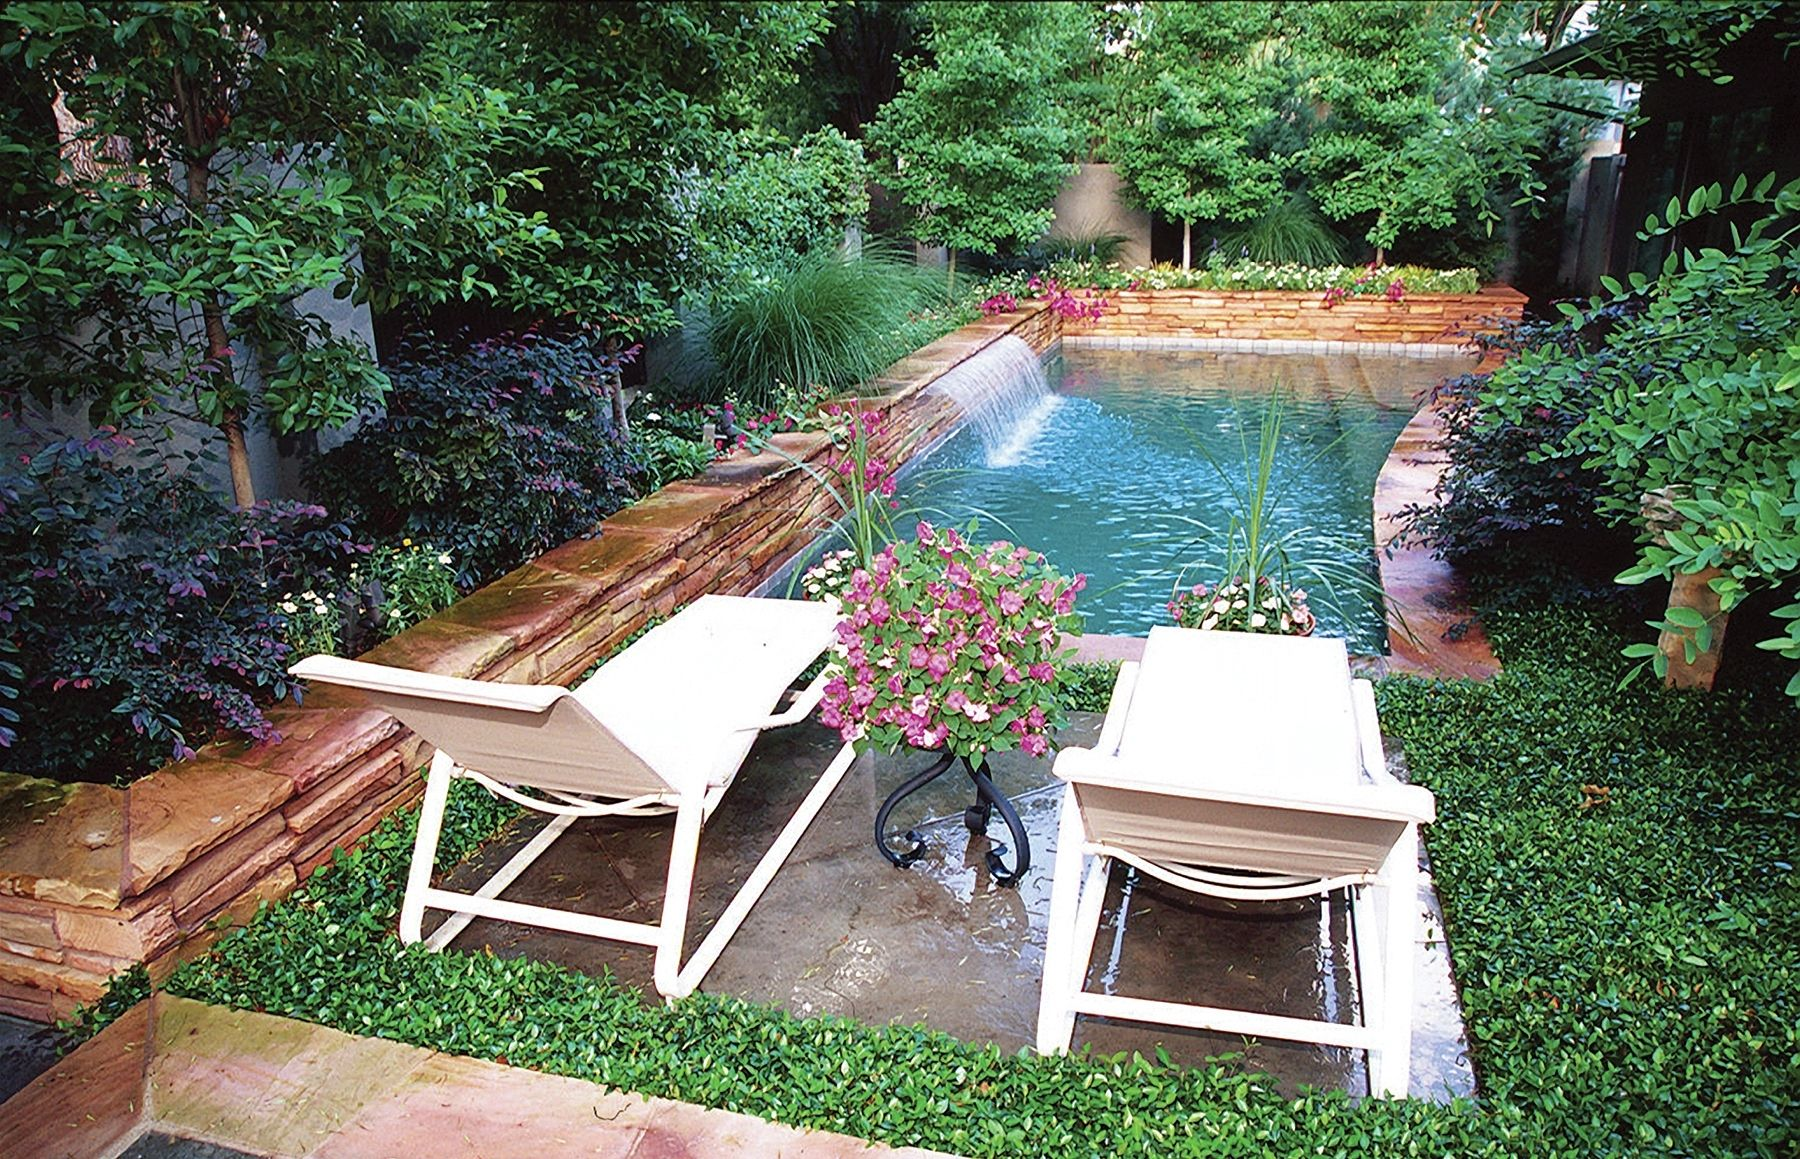 Swimming Pool Small Garden Uk Google Search Small Backyard Pools Backyard Pool Backyard Ideas For Small Yards